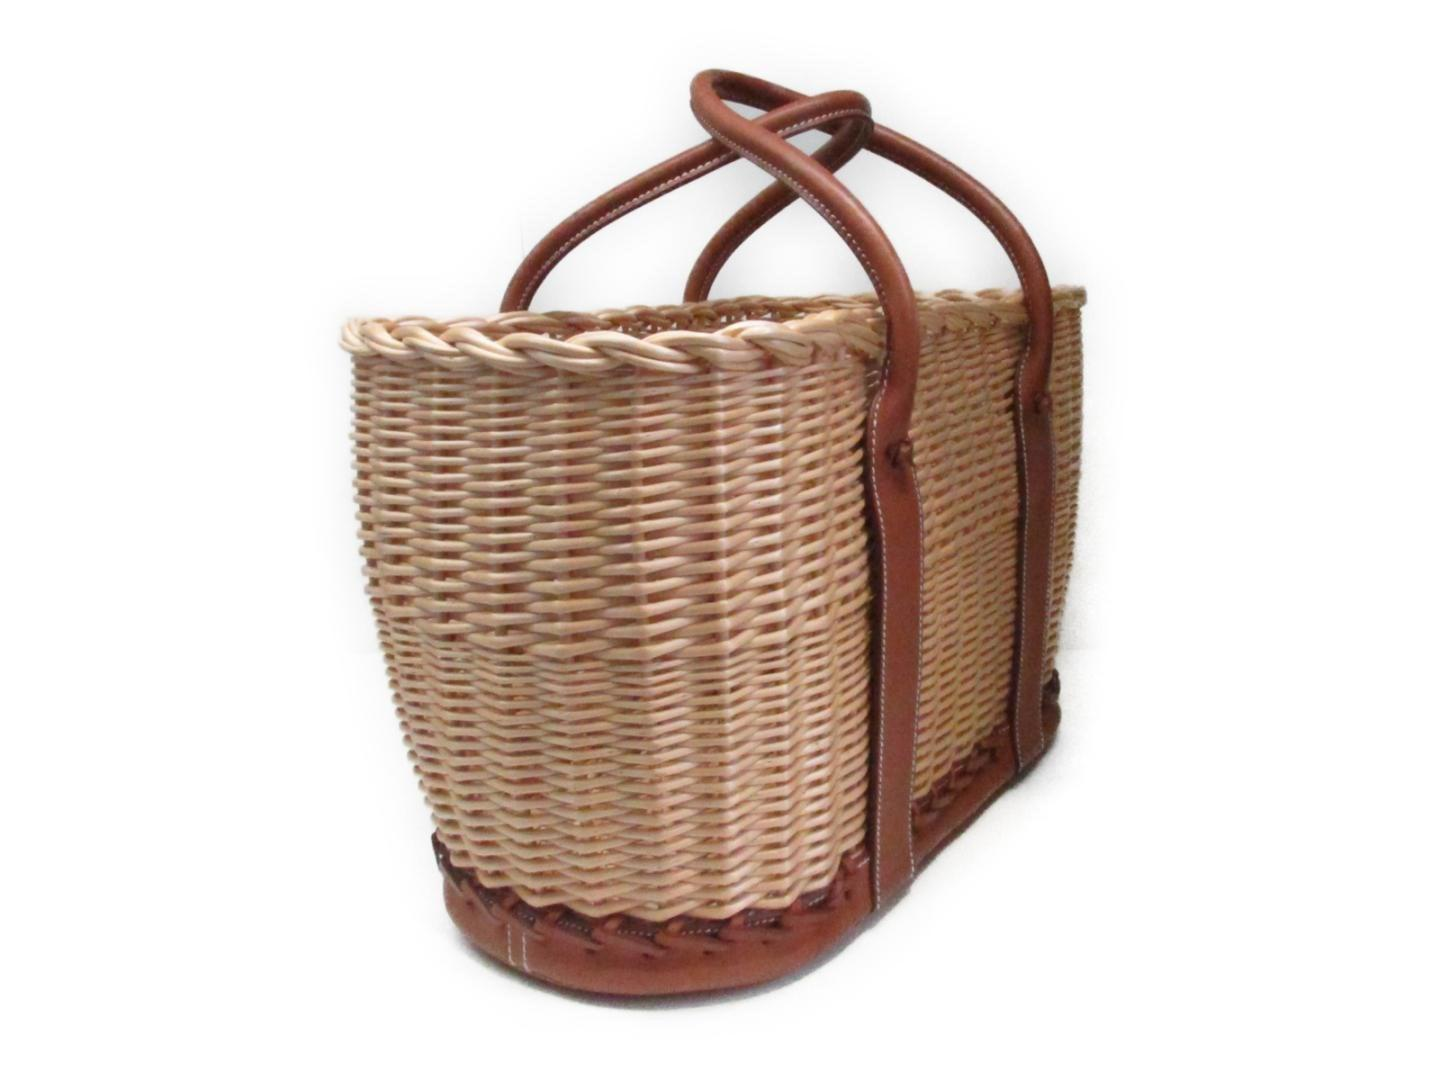 Lyst - Hermès Garden Picnic Basket Tote Hand Bag Barenia Leather ...